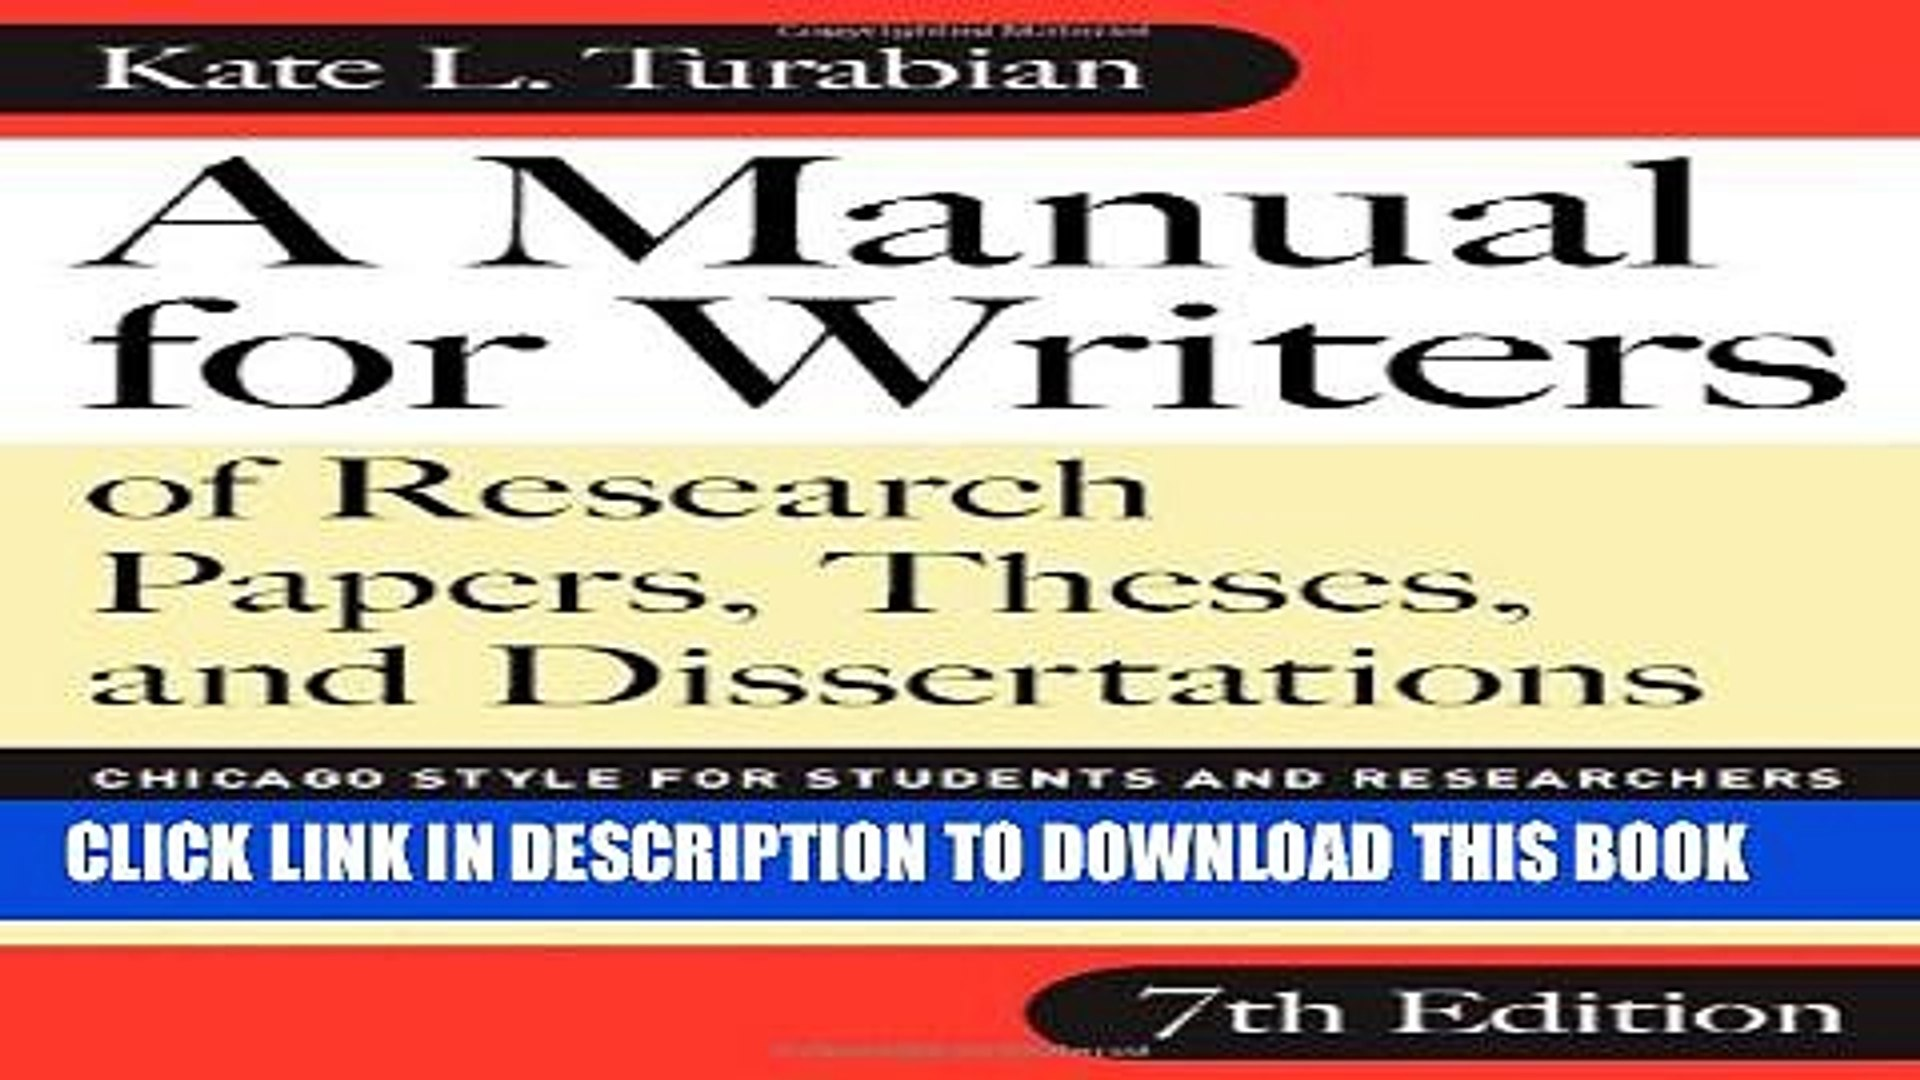 021 Research Paper Manual For Writers Of Papers Theses And Dissertations X1080 Sensational A 8th Edition Pdf Eighth Full